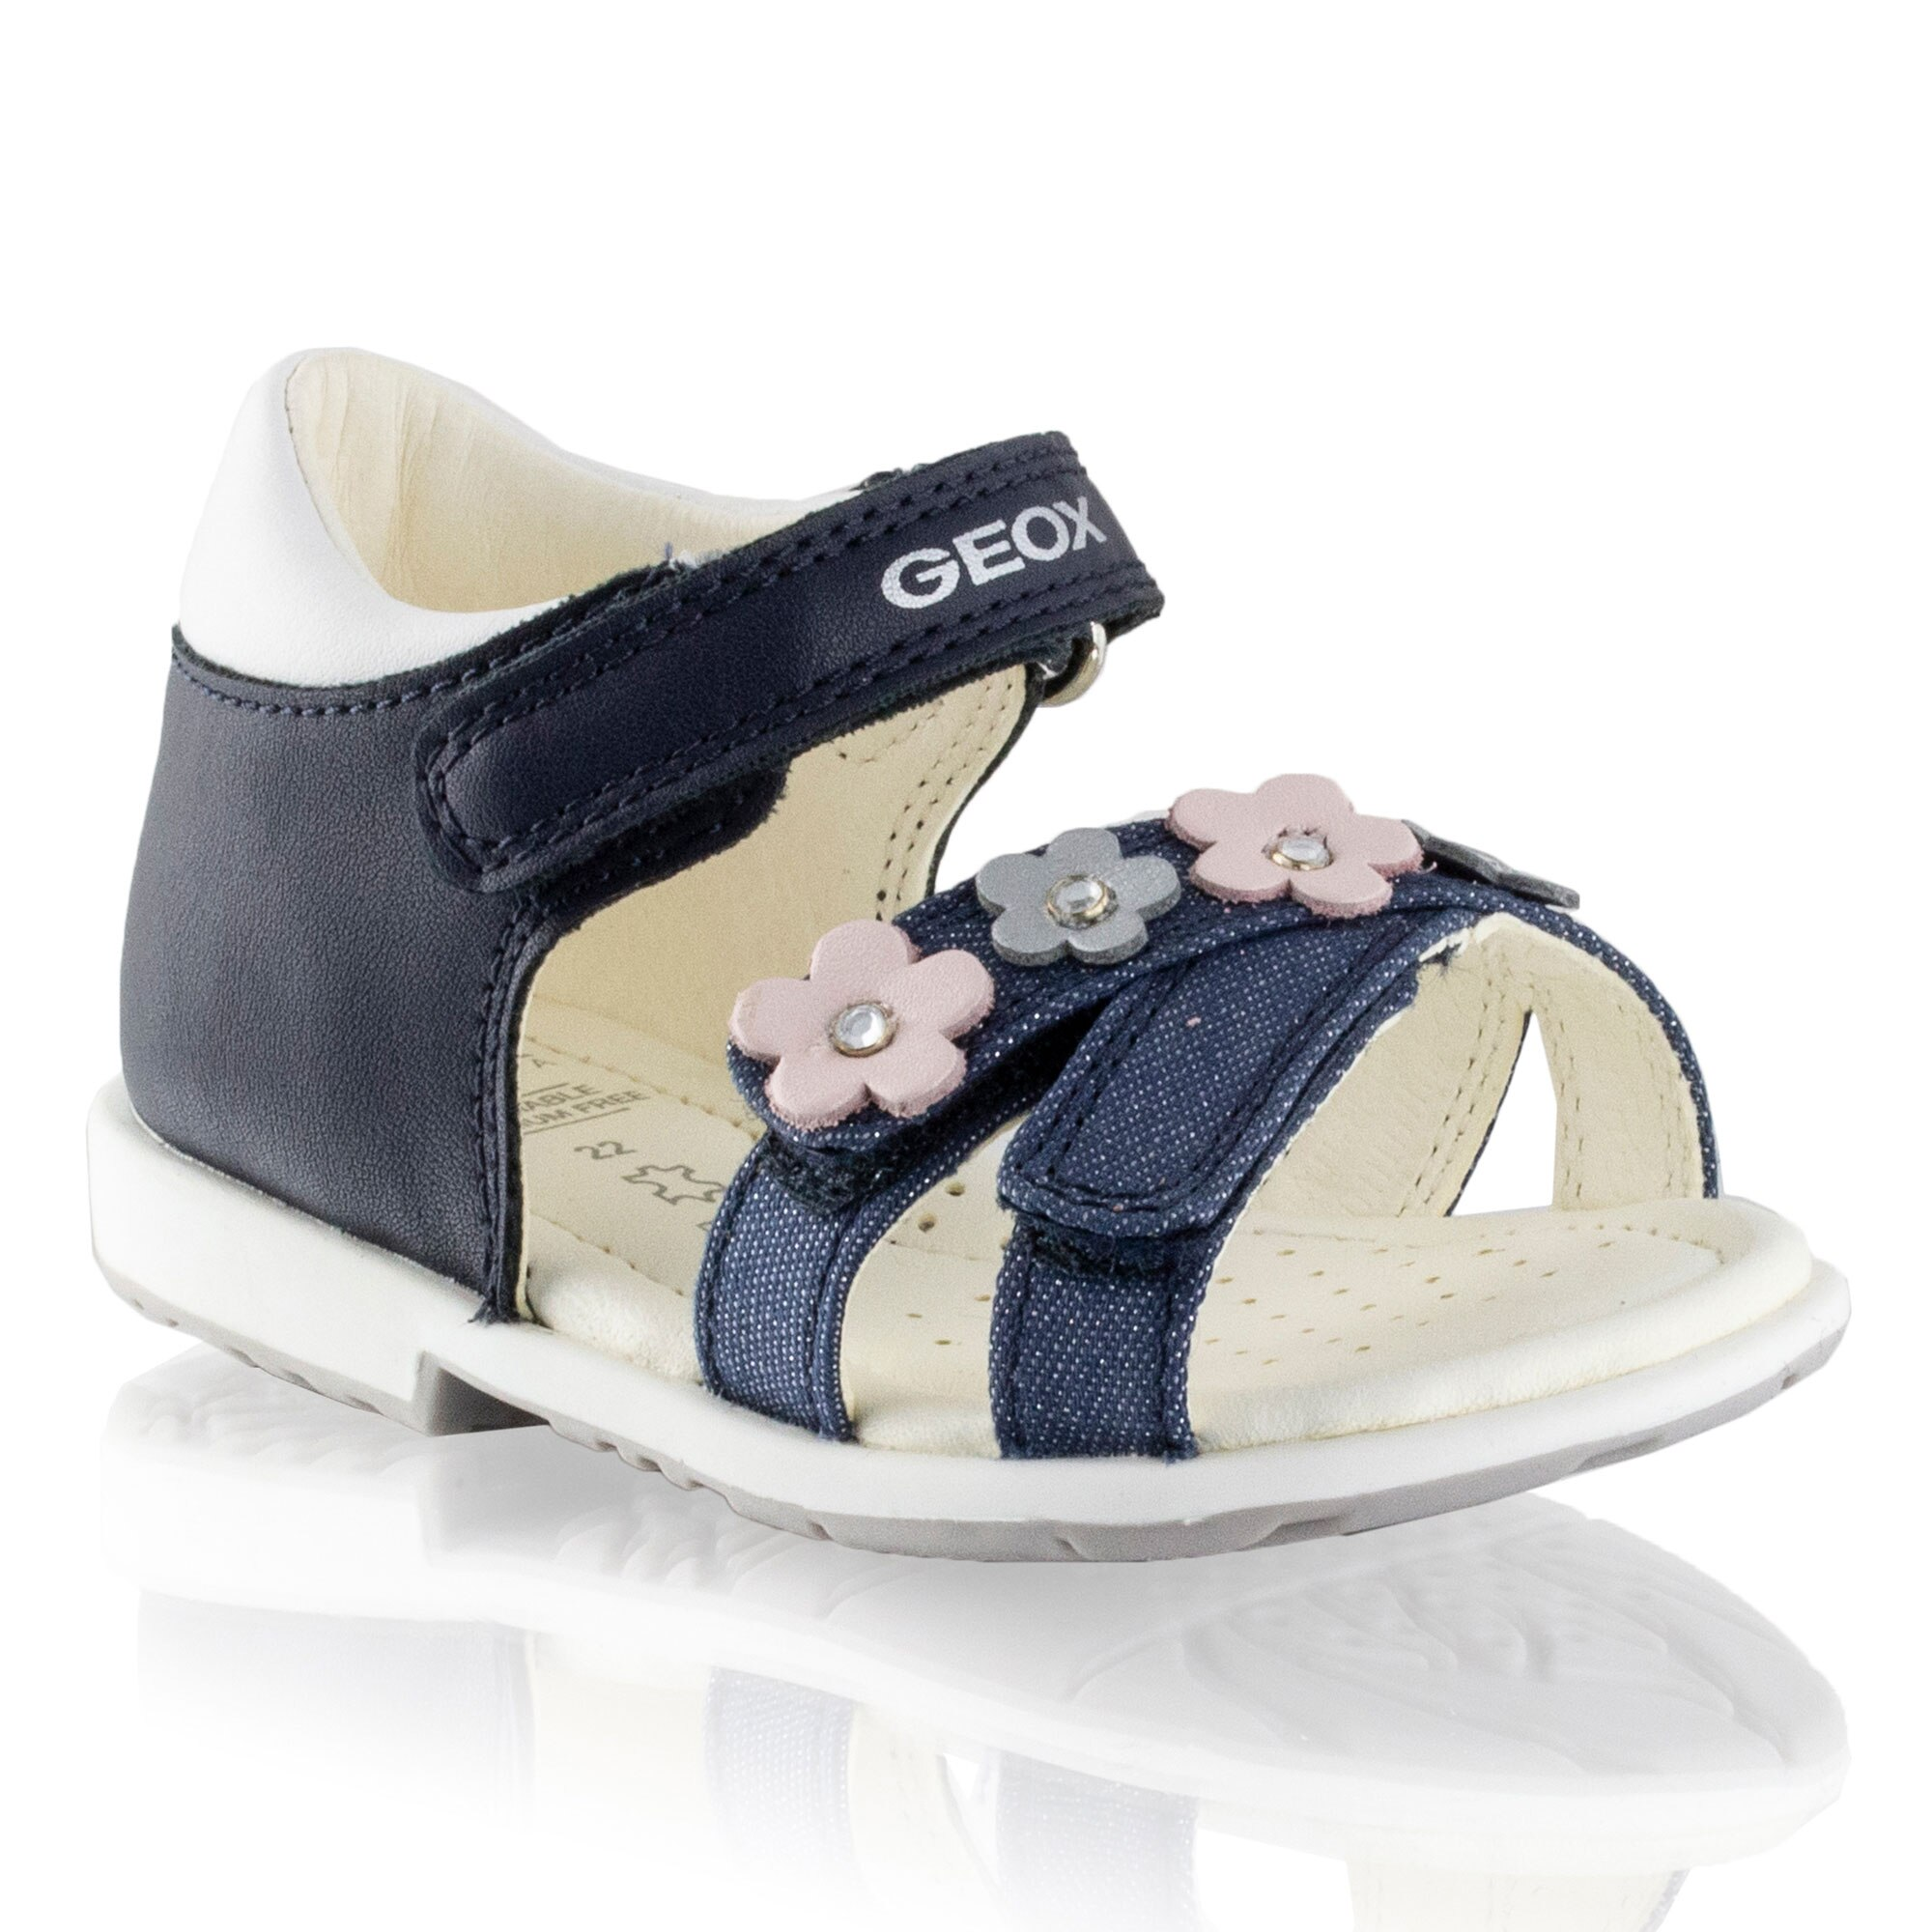 Russell and Bromley B VERRED Velcro Strap Open Sandal